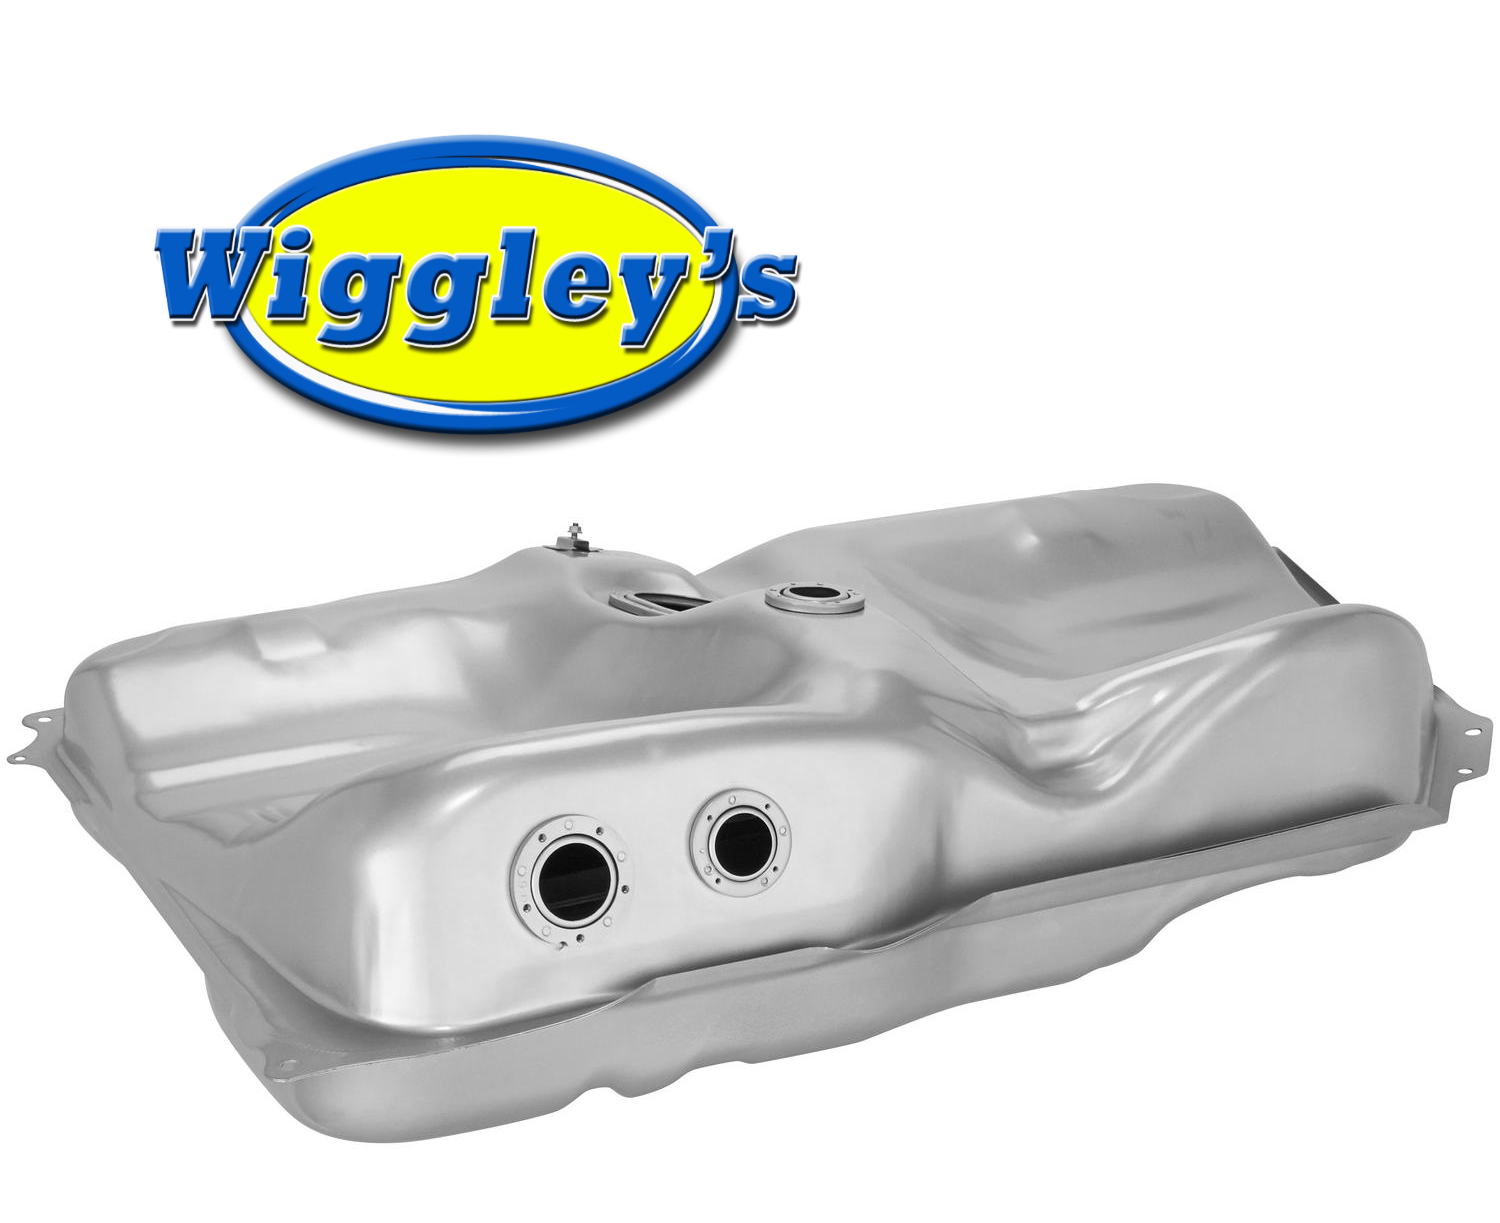 FUEL TANK TOC-04, TO36A FOR 94 95 96 97 98 99 TOYOTA CELICA L4 1.8L 2.2L